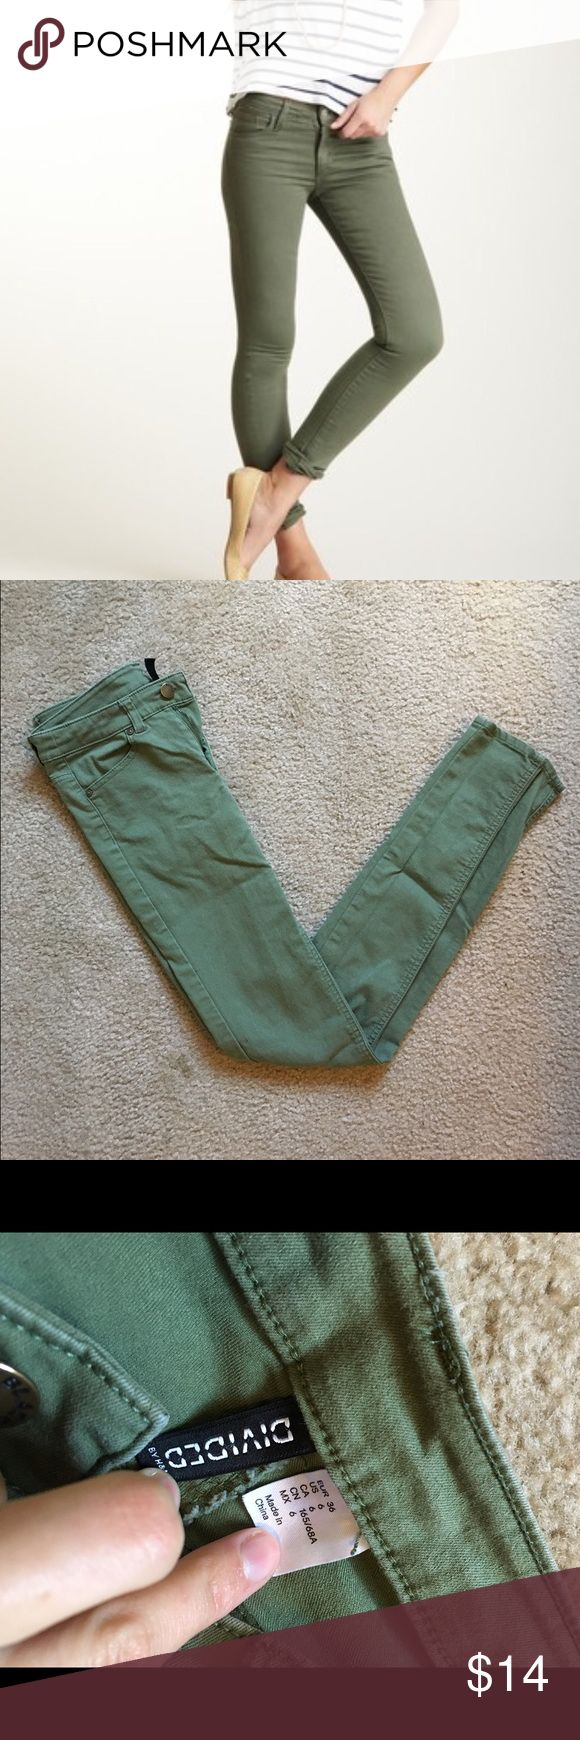 Olive Skinny Jeans Size 6 olive green skinnies by H&M. Worn once, no flaws! Open to offers; bundles discounted! H&M Pants Skinny